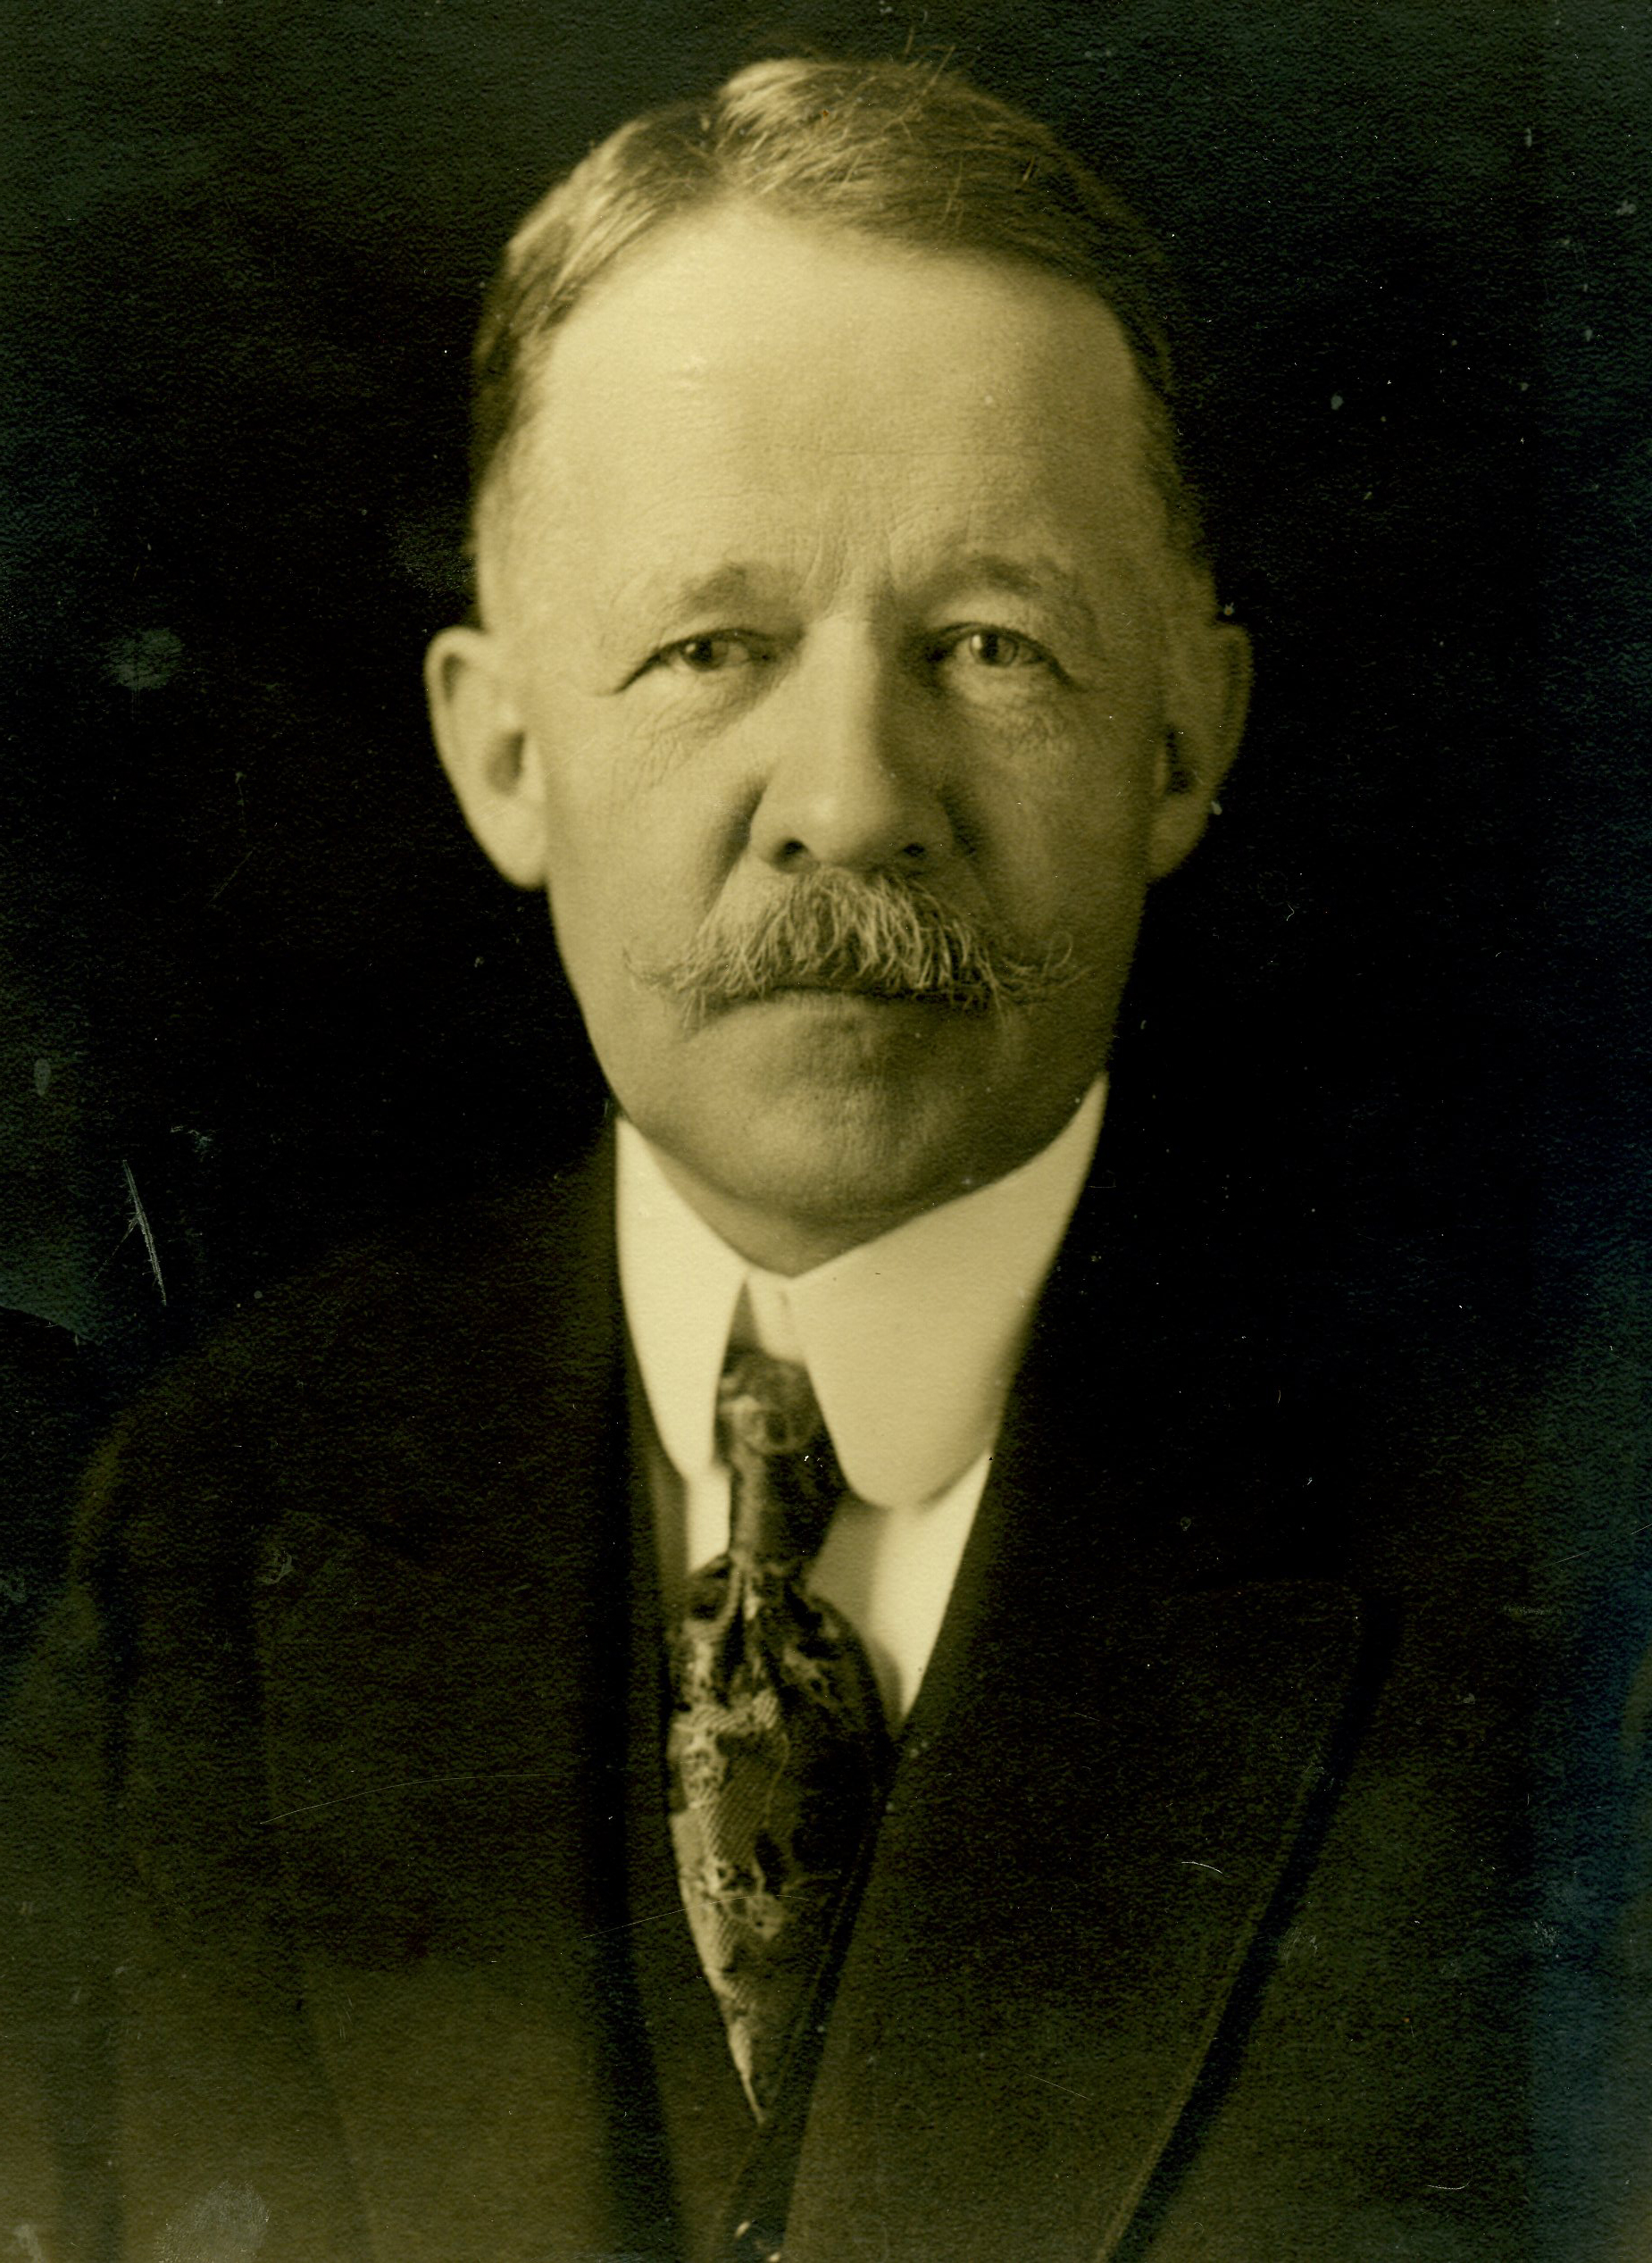 1899 - The Palisades Interstate Park Commission was established, and George Walbridge Perkins (pictured) was asked by Governor Roosevelt to Chair the Commission.Chairman George Perkins met with J. Pierpont Morgan and secured a commitment of $125,000 and an introduction to John D. Rockefeller, Sr.